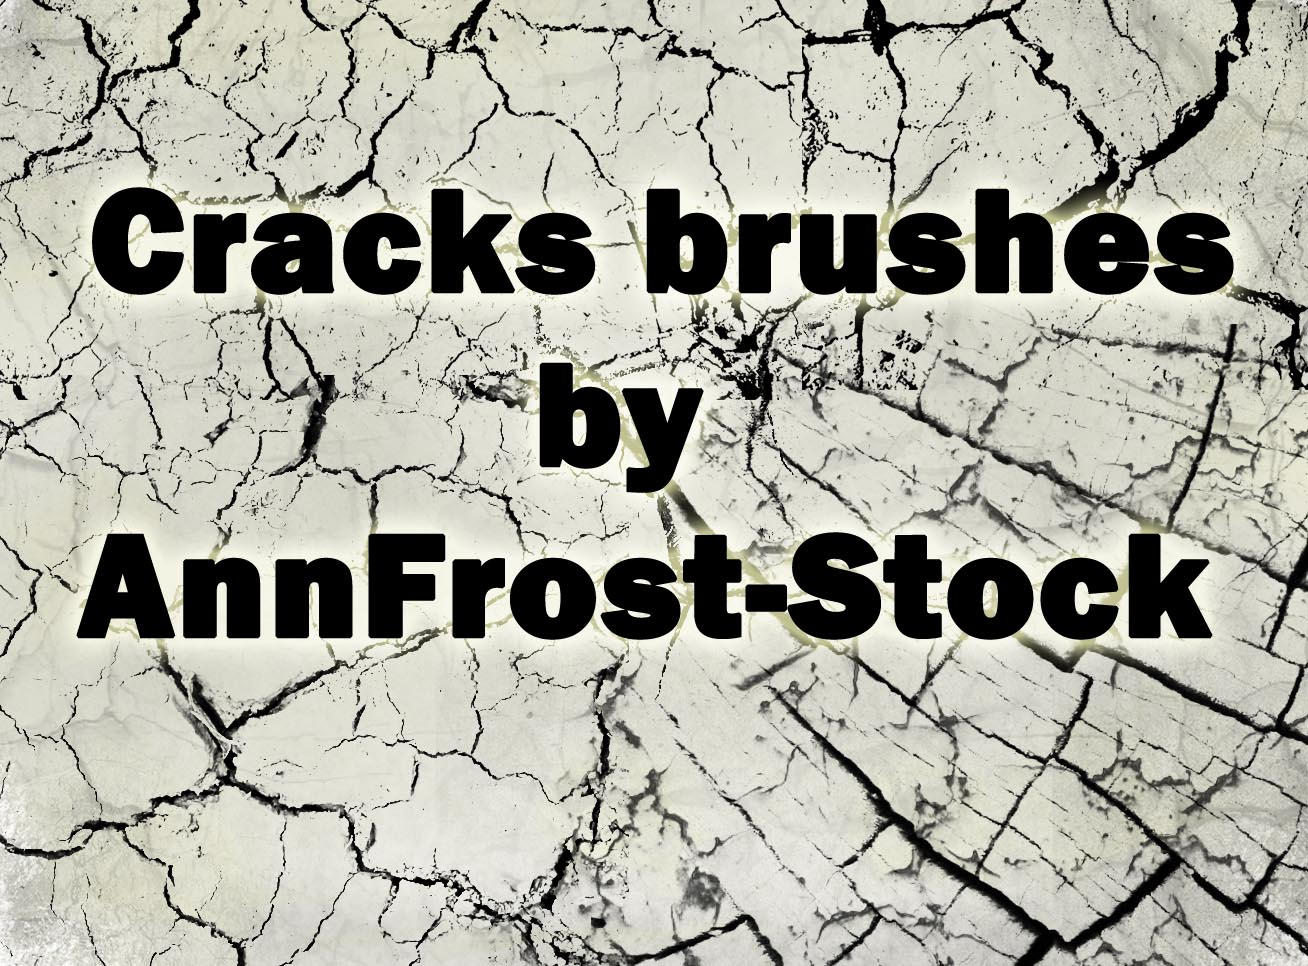 Cracks brush by AnnFrost-stock